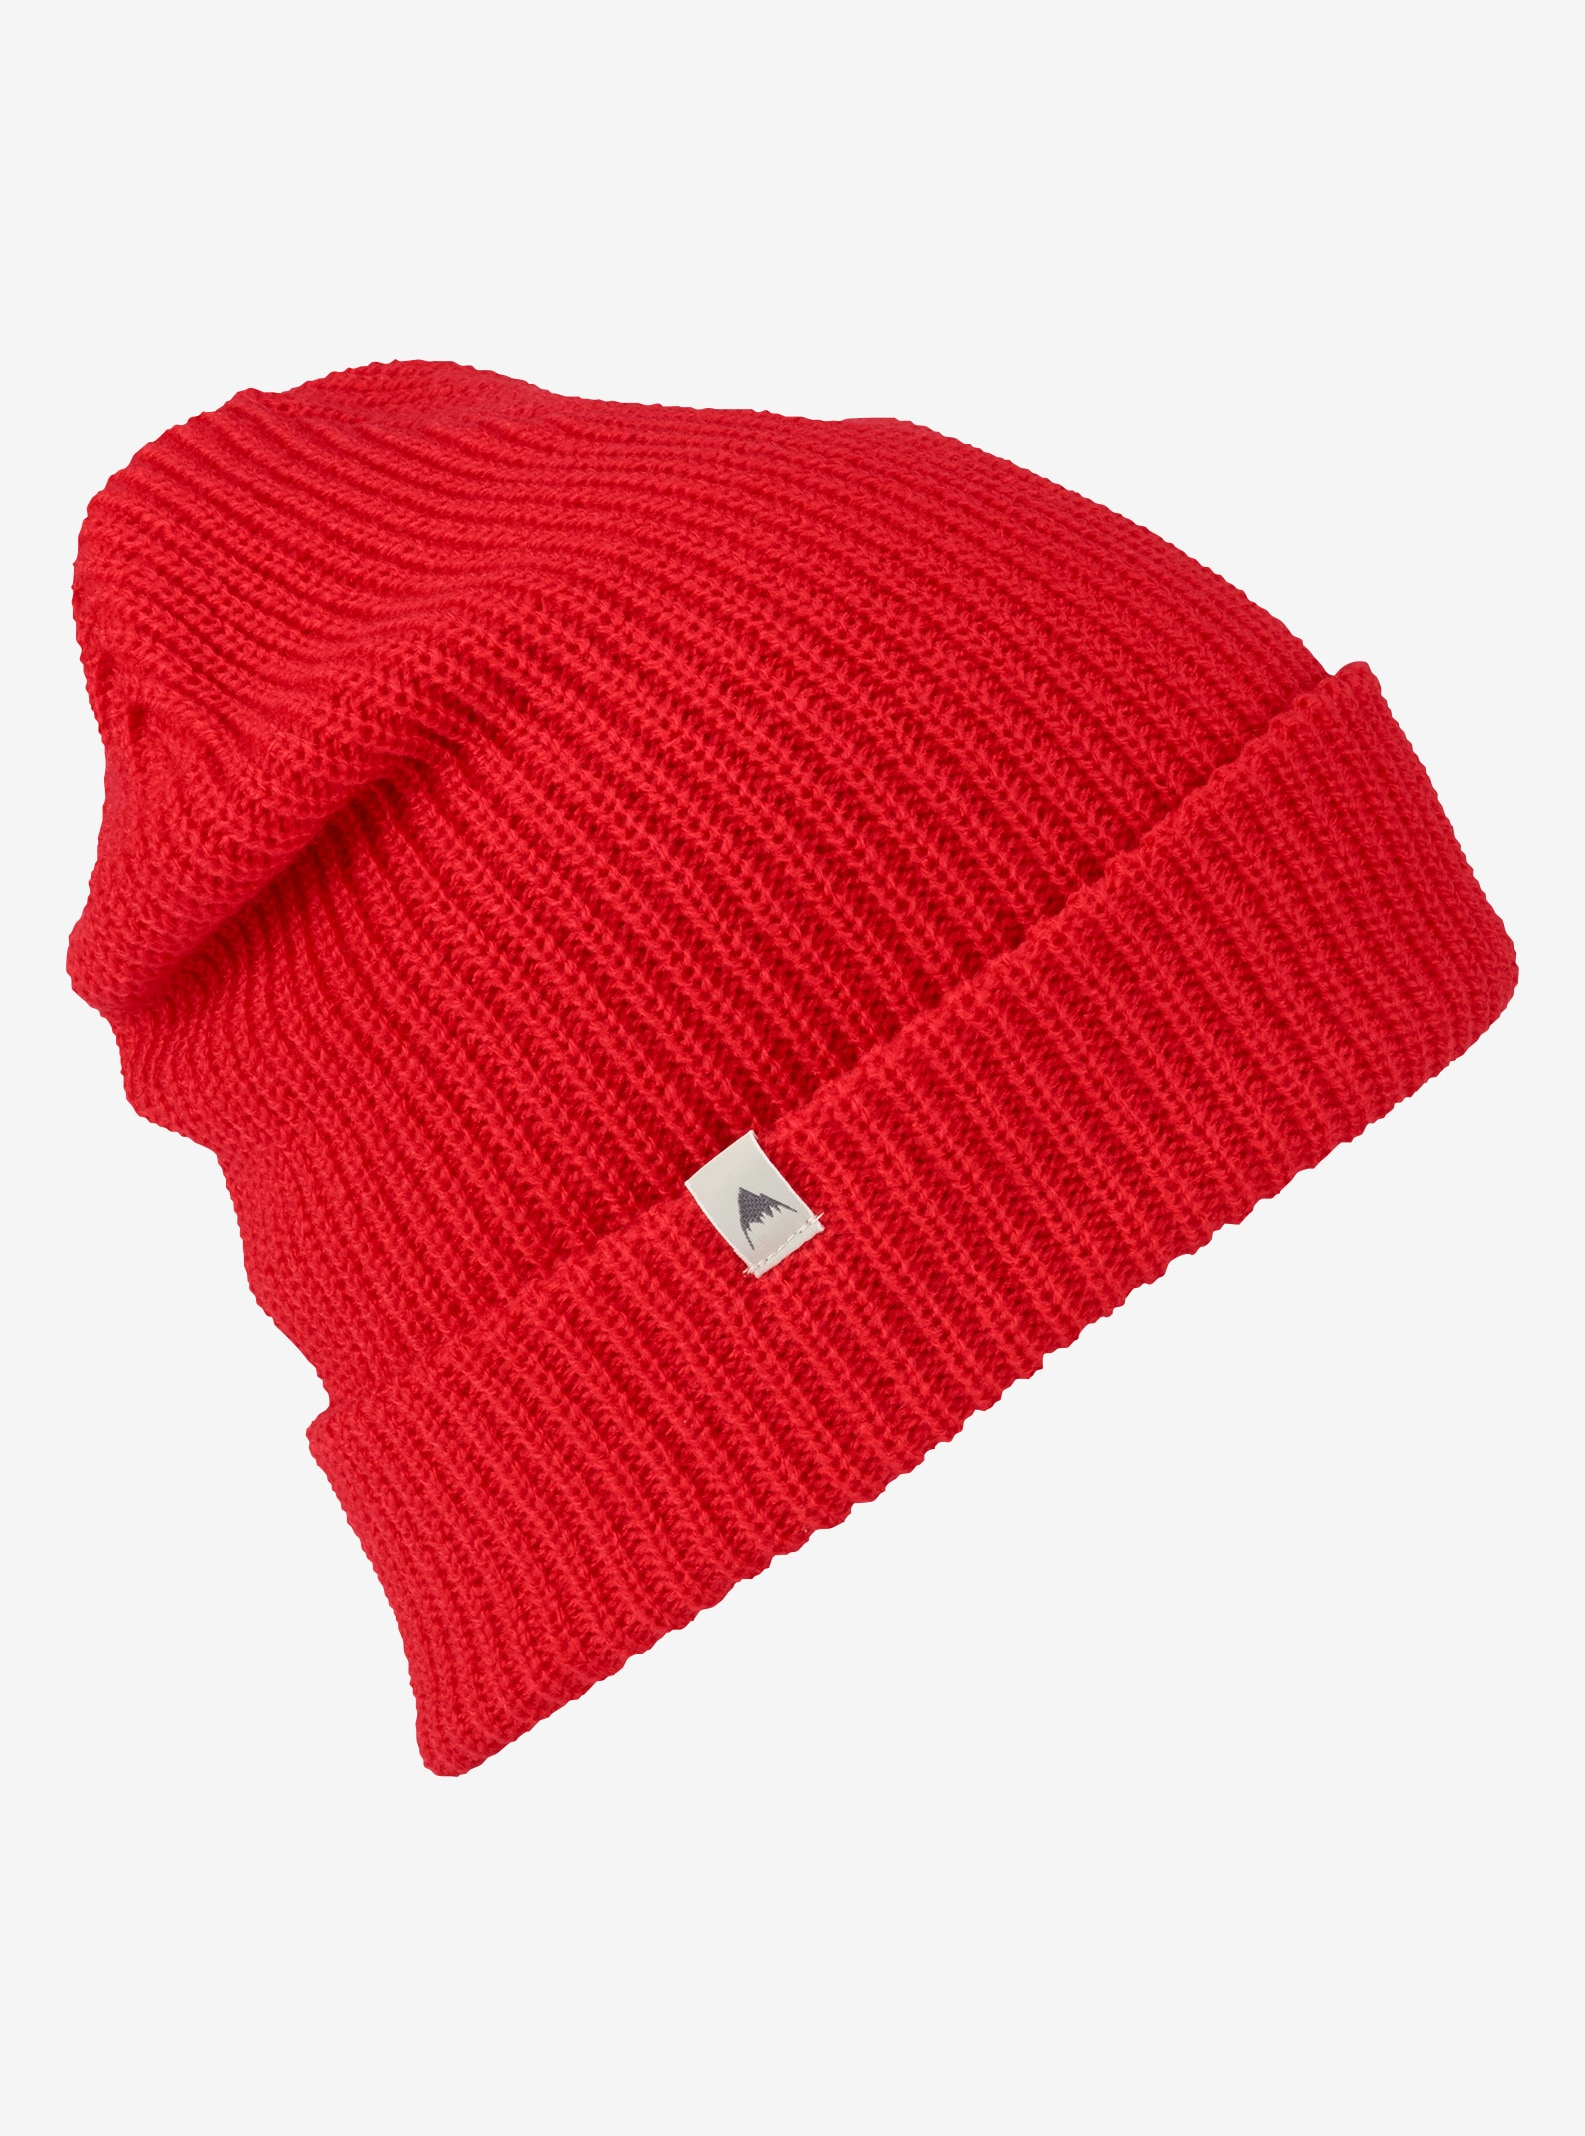 Burton Truckstop Beanie shown in Fiery Red